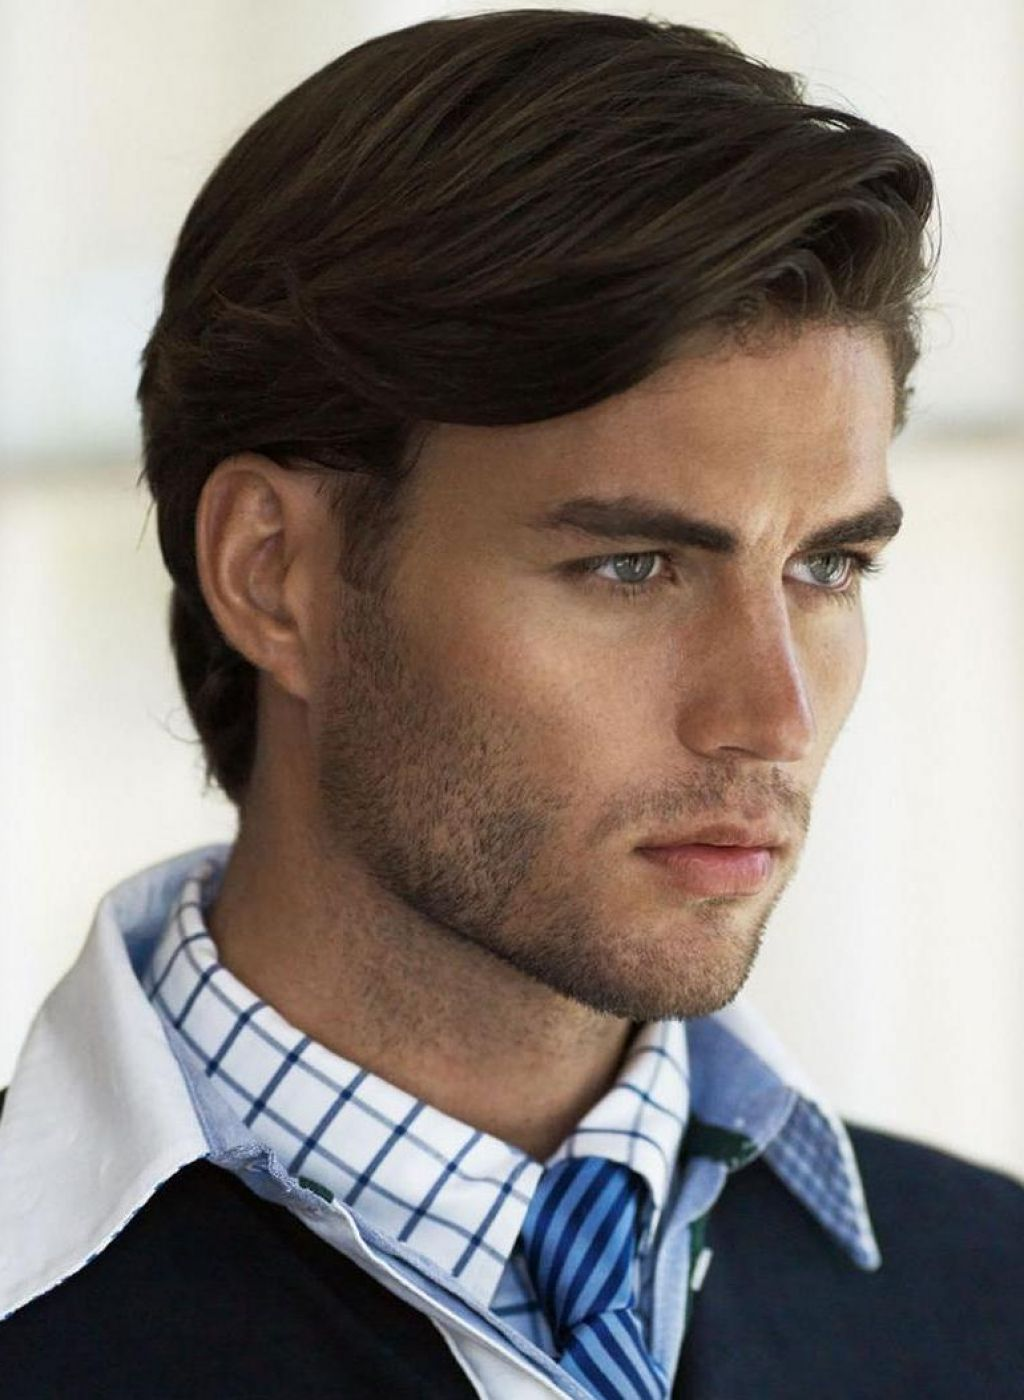 Hairstyles For Medium Length Hair Men With Mullet Style Long In Front And Back Short H Mens Hairstyles Medium Medium Hair Styles Mens Medium Length Hairstyles